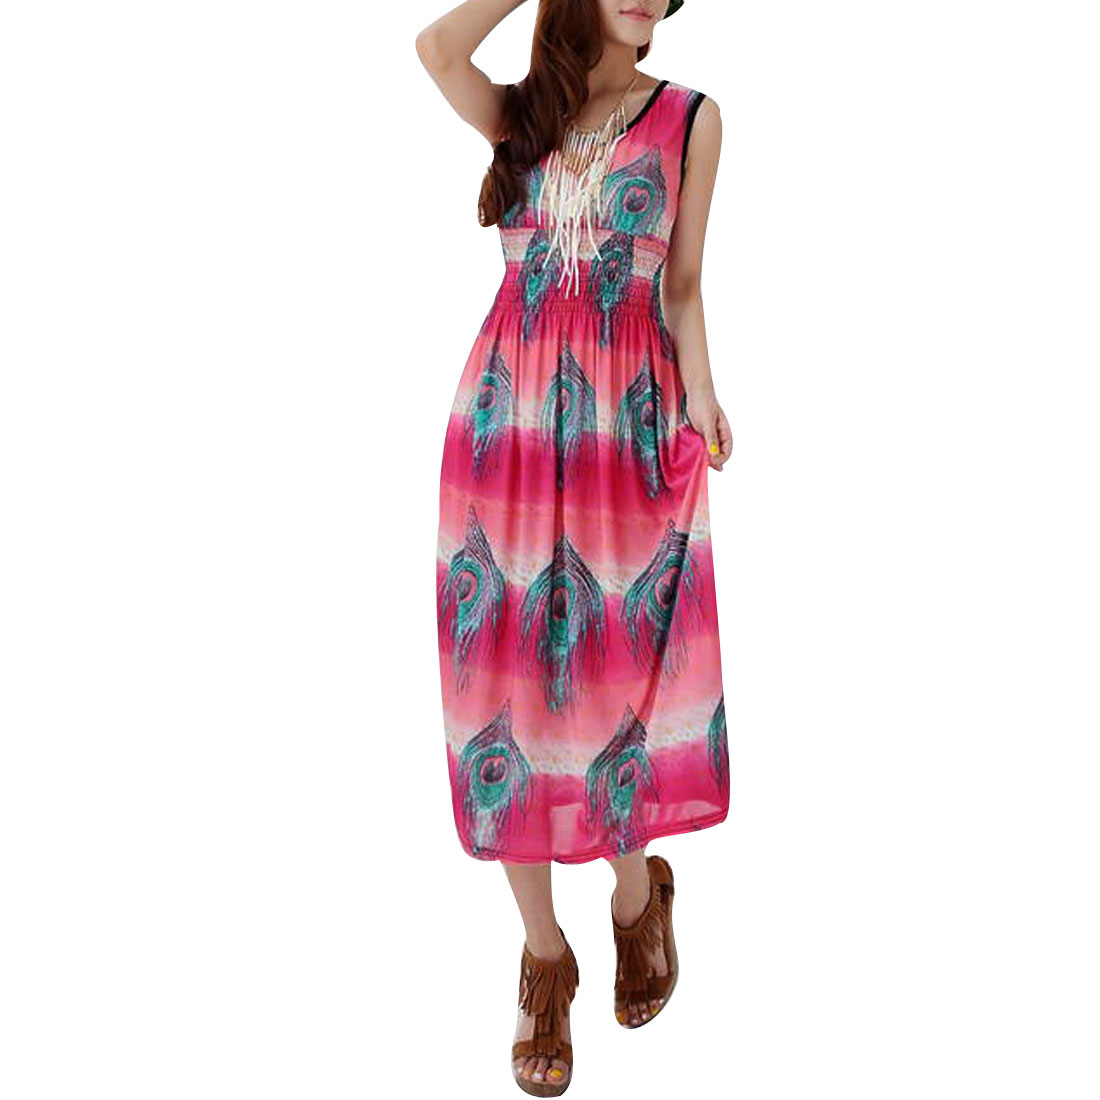 Lady Pullover Scoop Neck Peacock Feather Pattern Fuchsia Mid-calf Dress XS